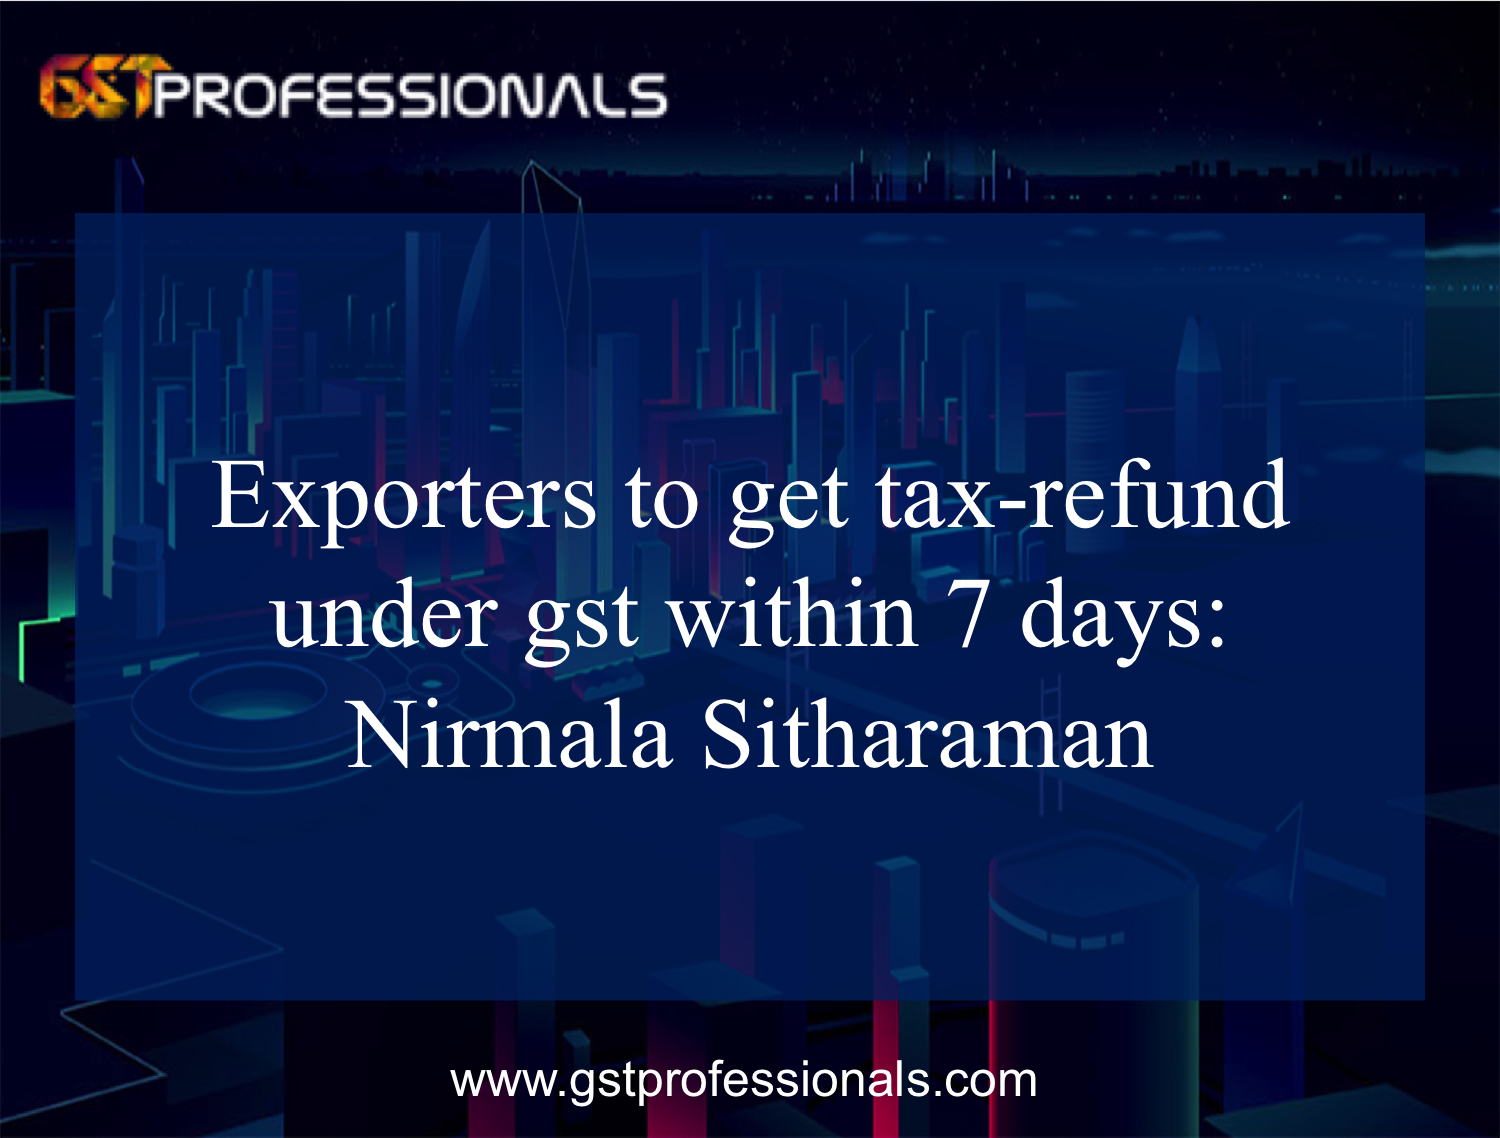 Exporters to get tax-refund under gst within 7 days: Nirmala Sitharaman